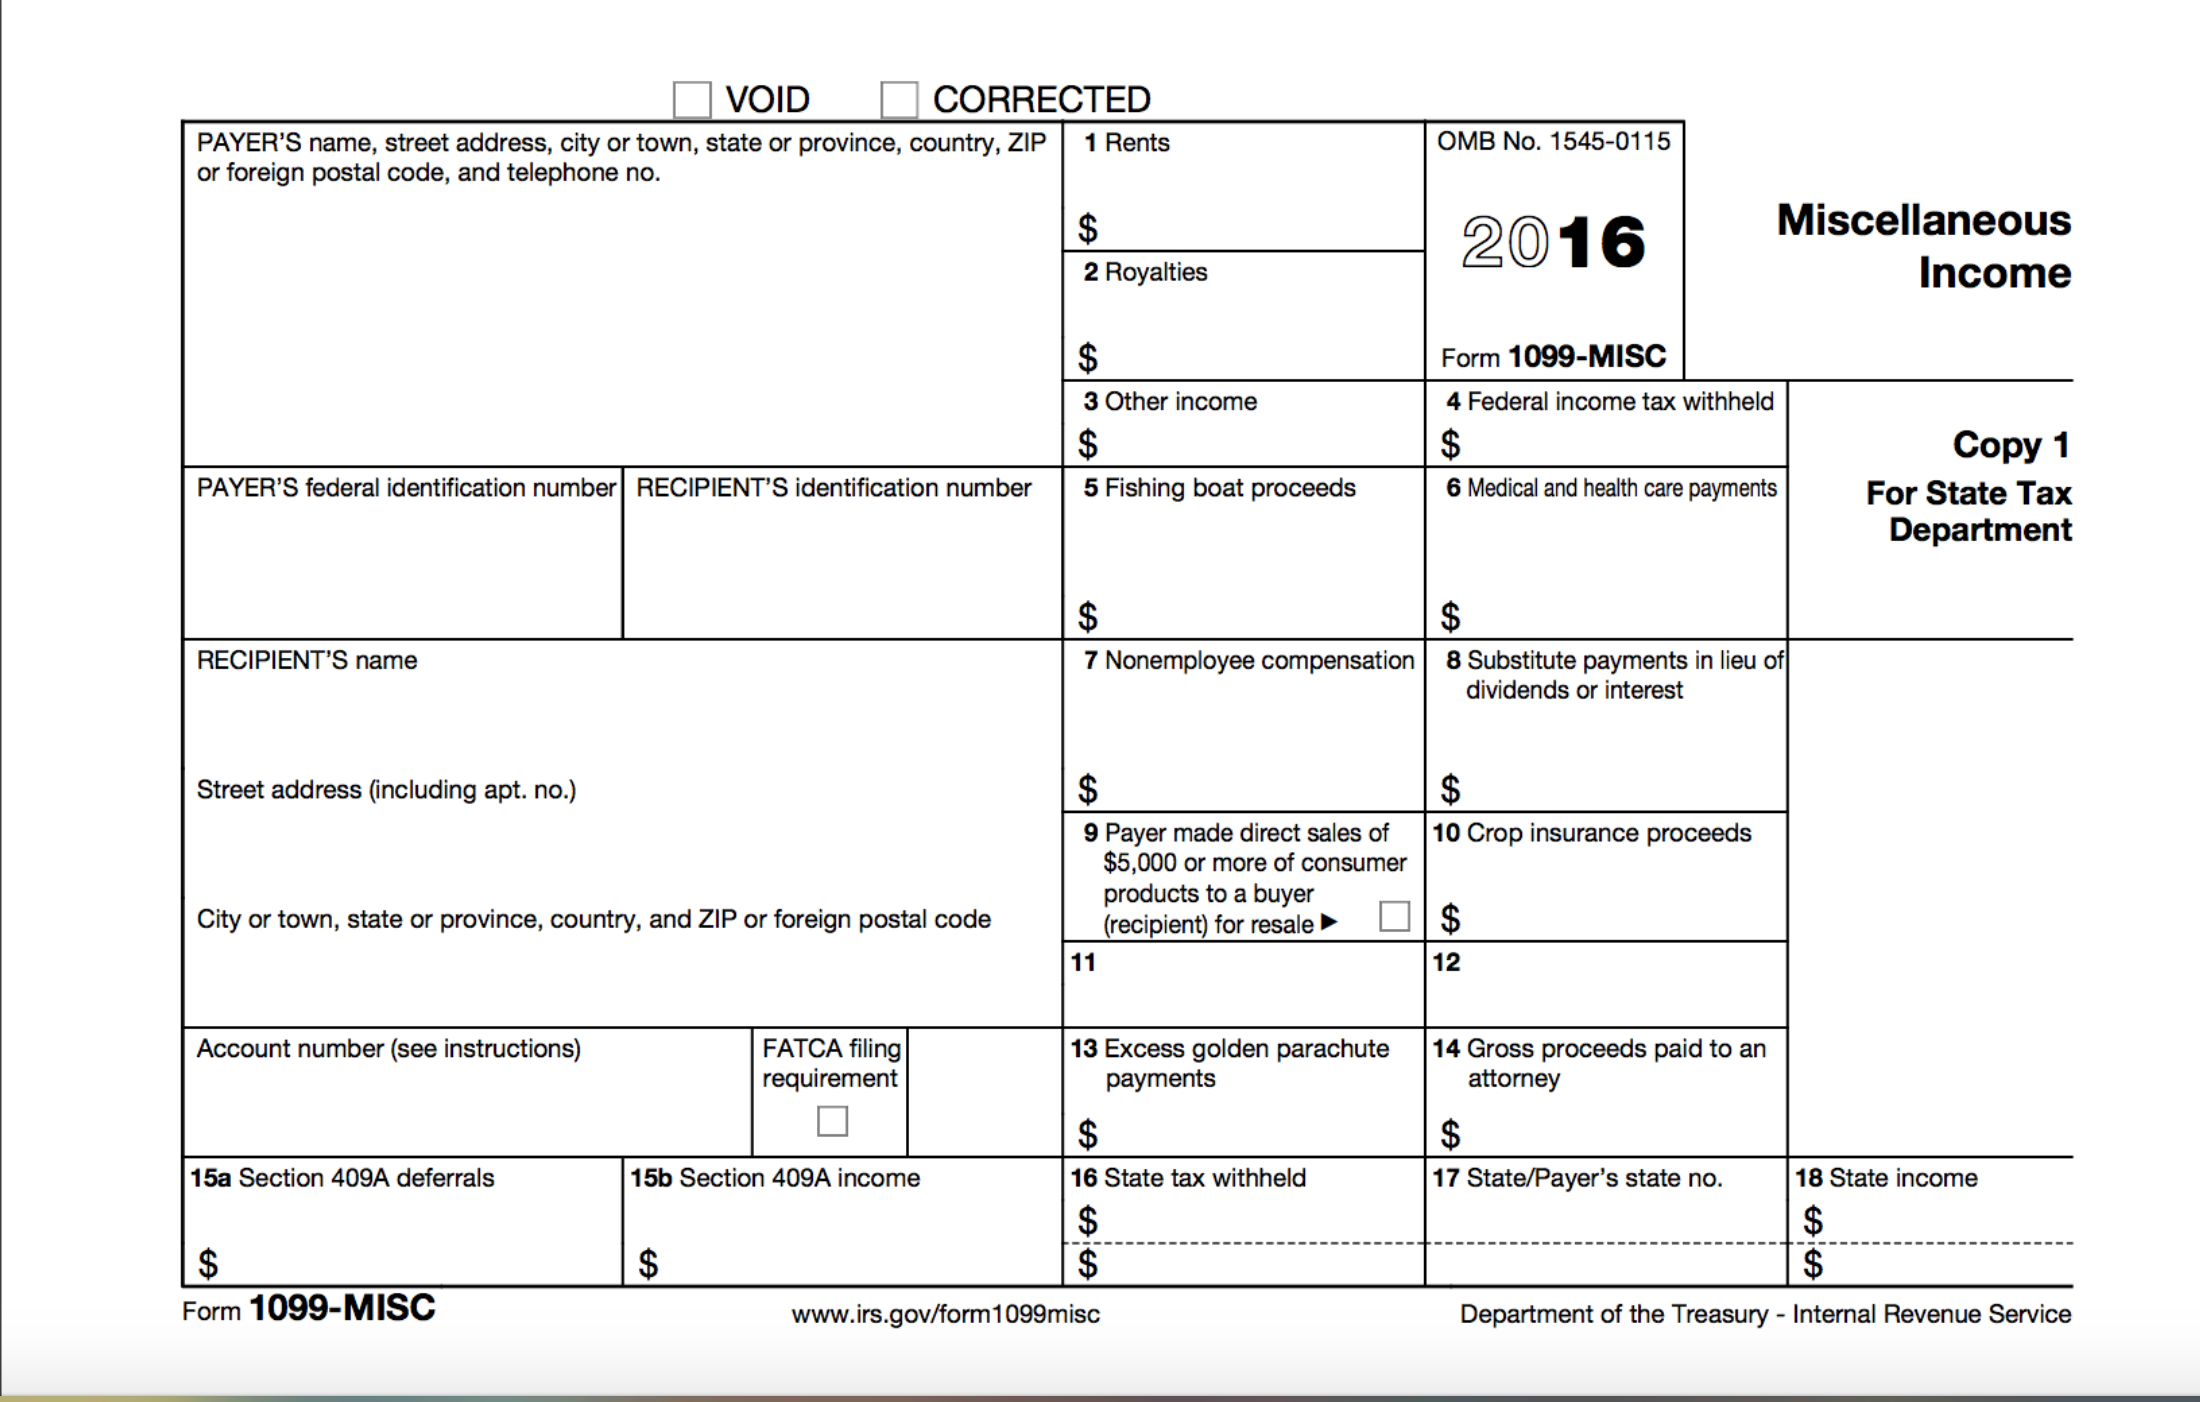 1099-MISC tax form DIY guide | ZipBooks Blog